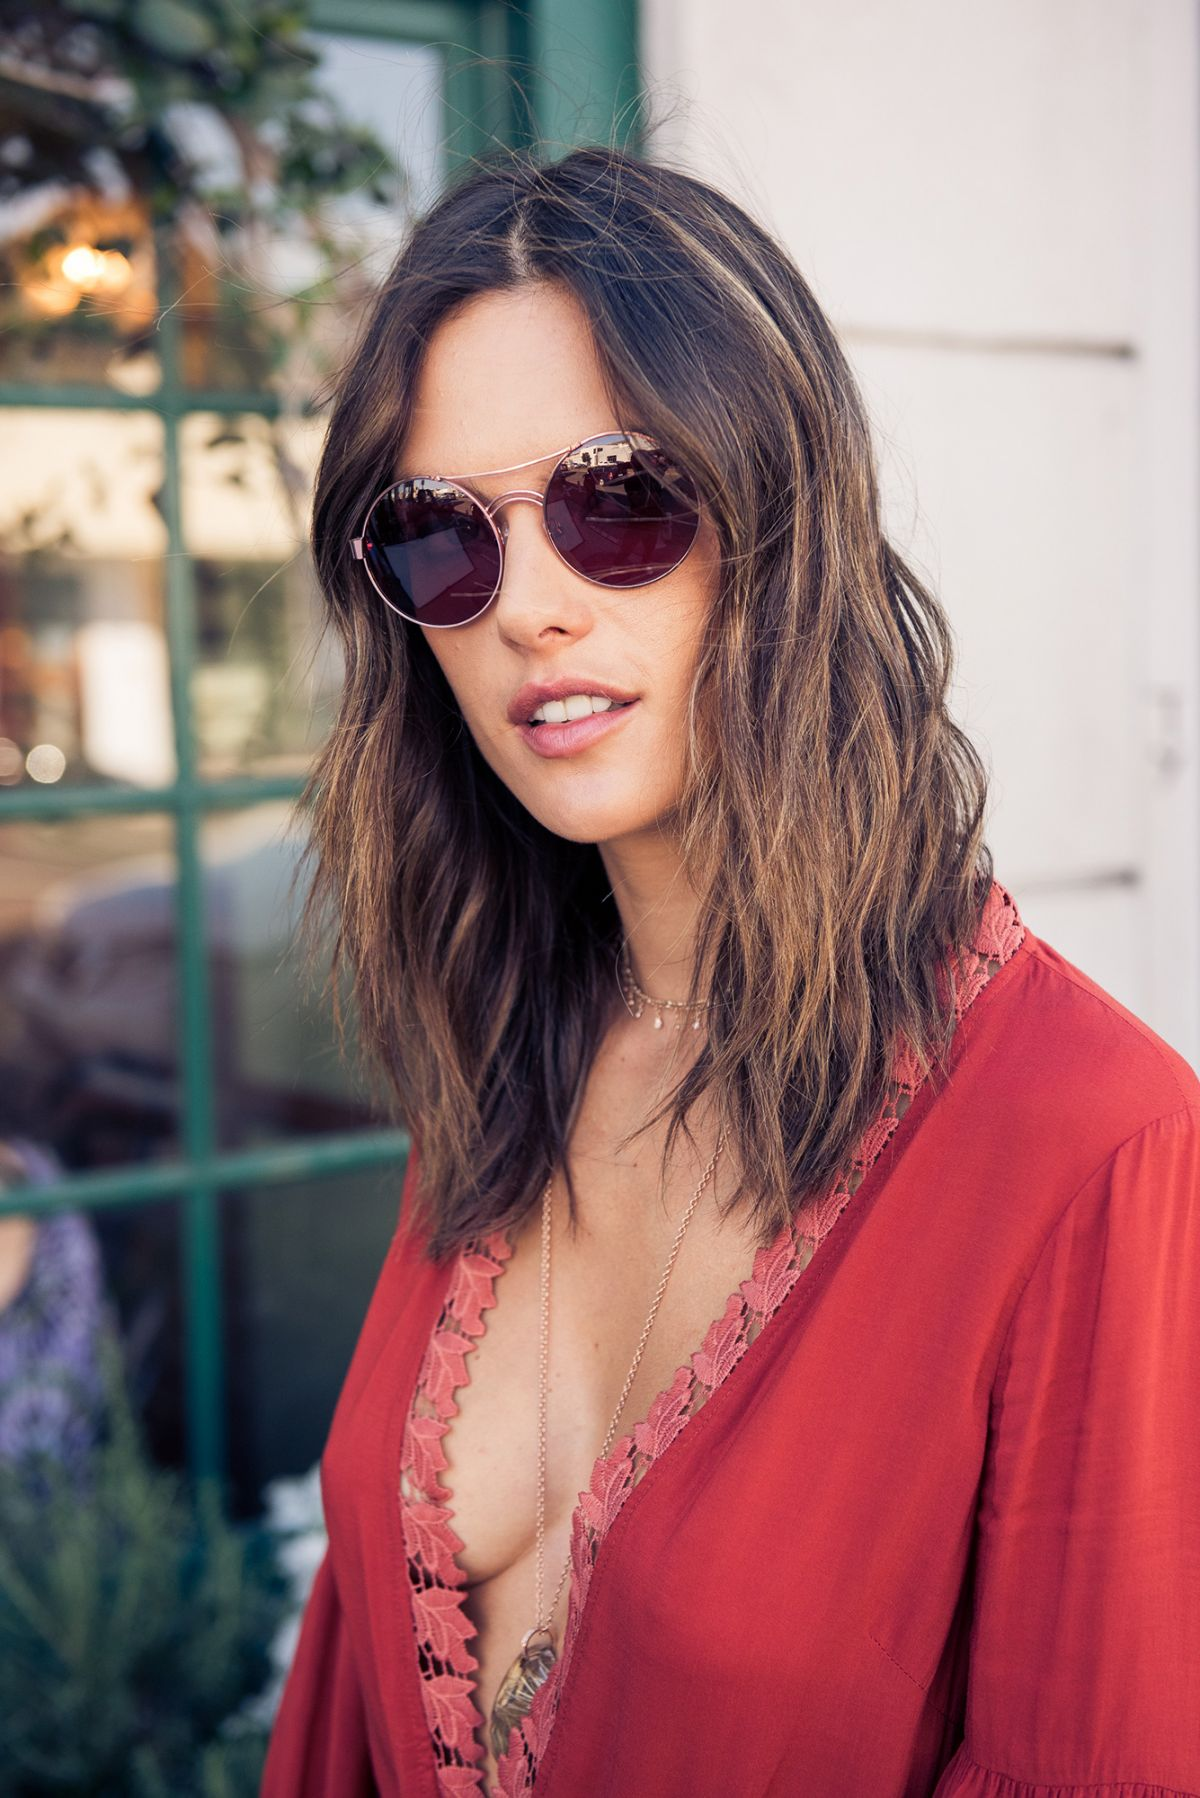 ALESSANDRA AMBROSIO for Guide to Los Angeles, November 2016